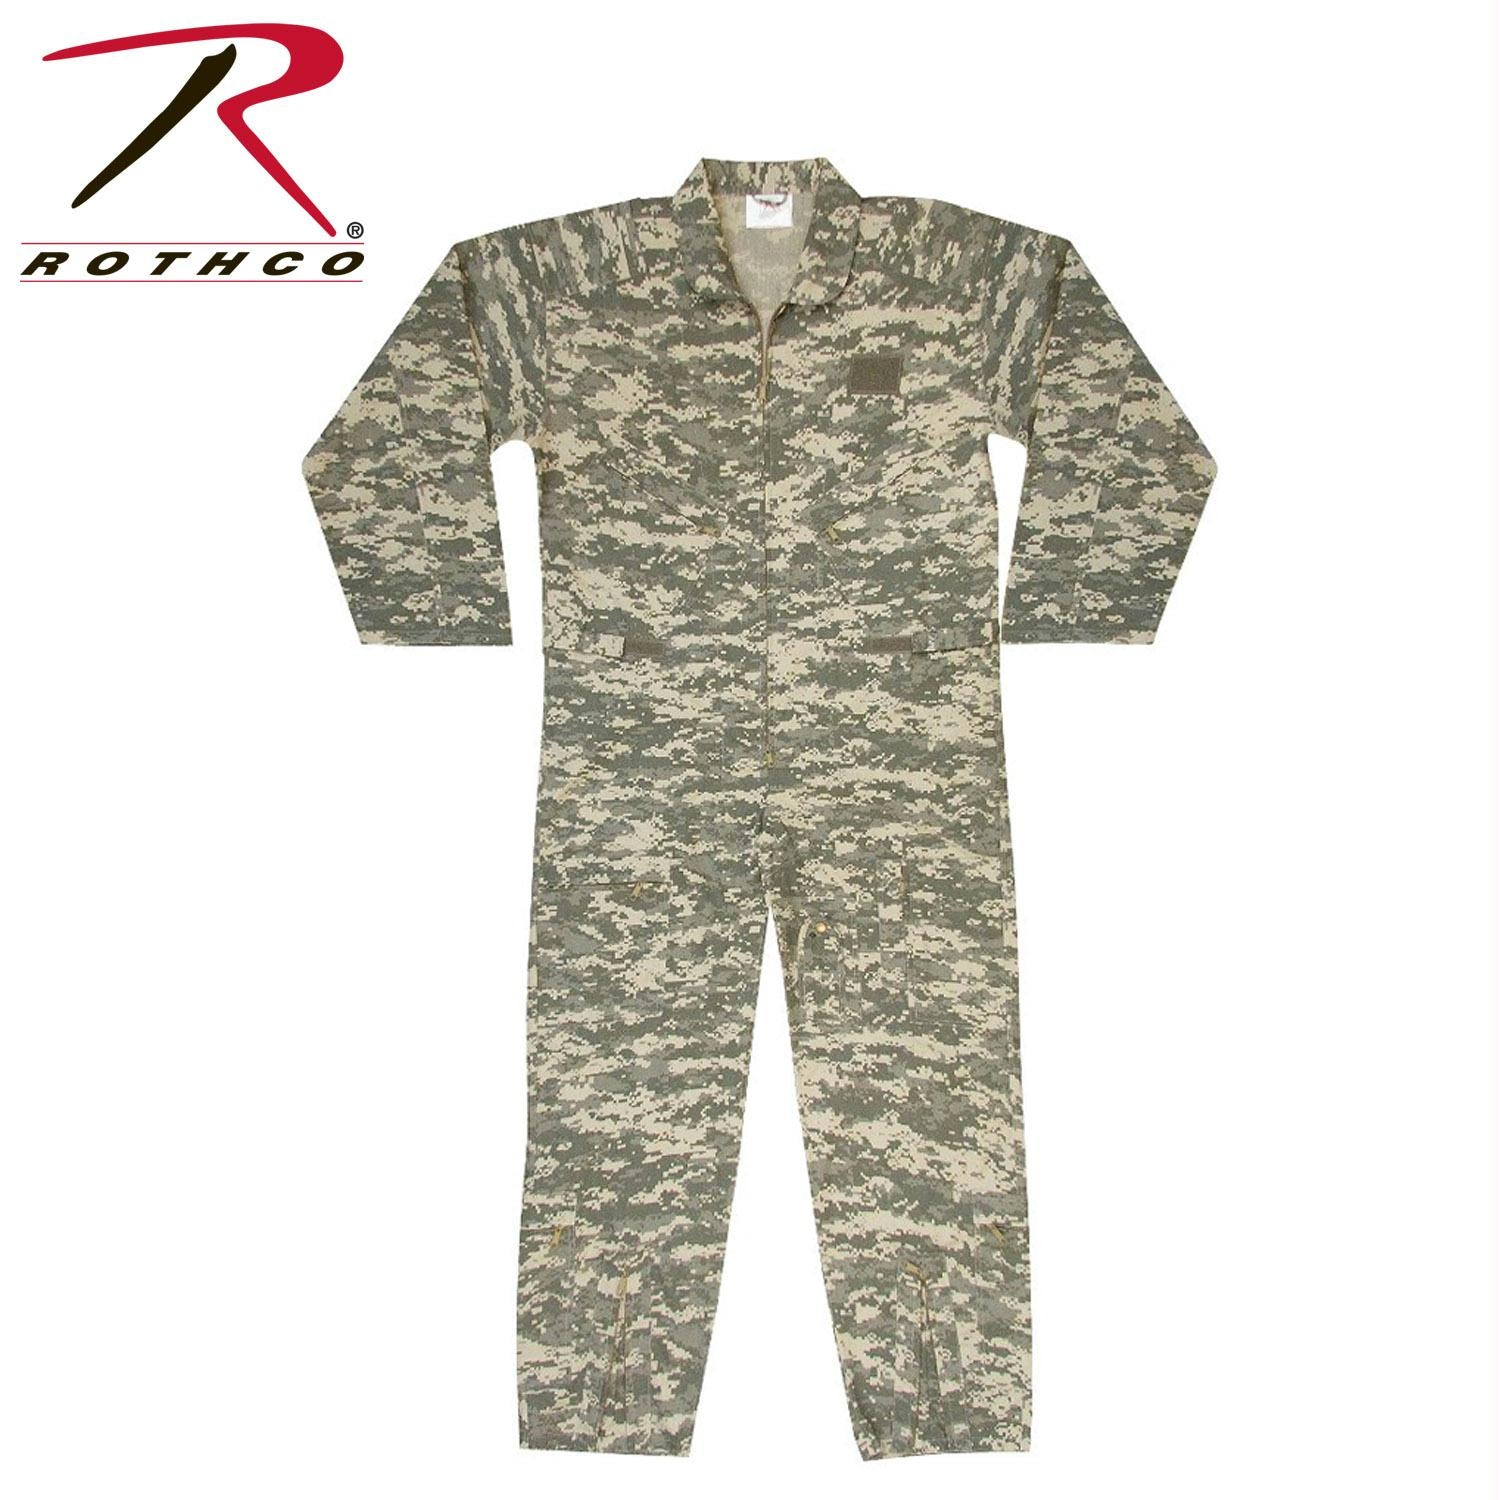 Rothco Kids Air Force Type Flightsuit - ACU Digital Camo / M